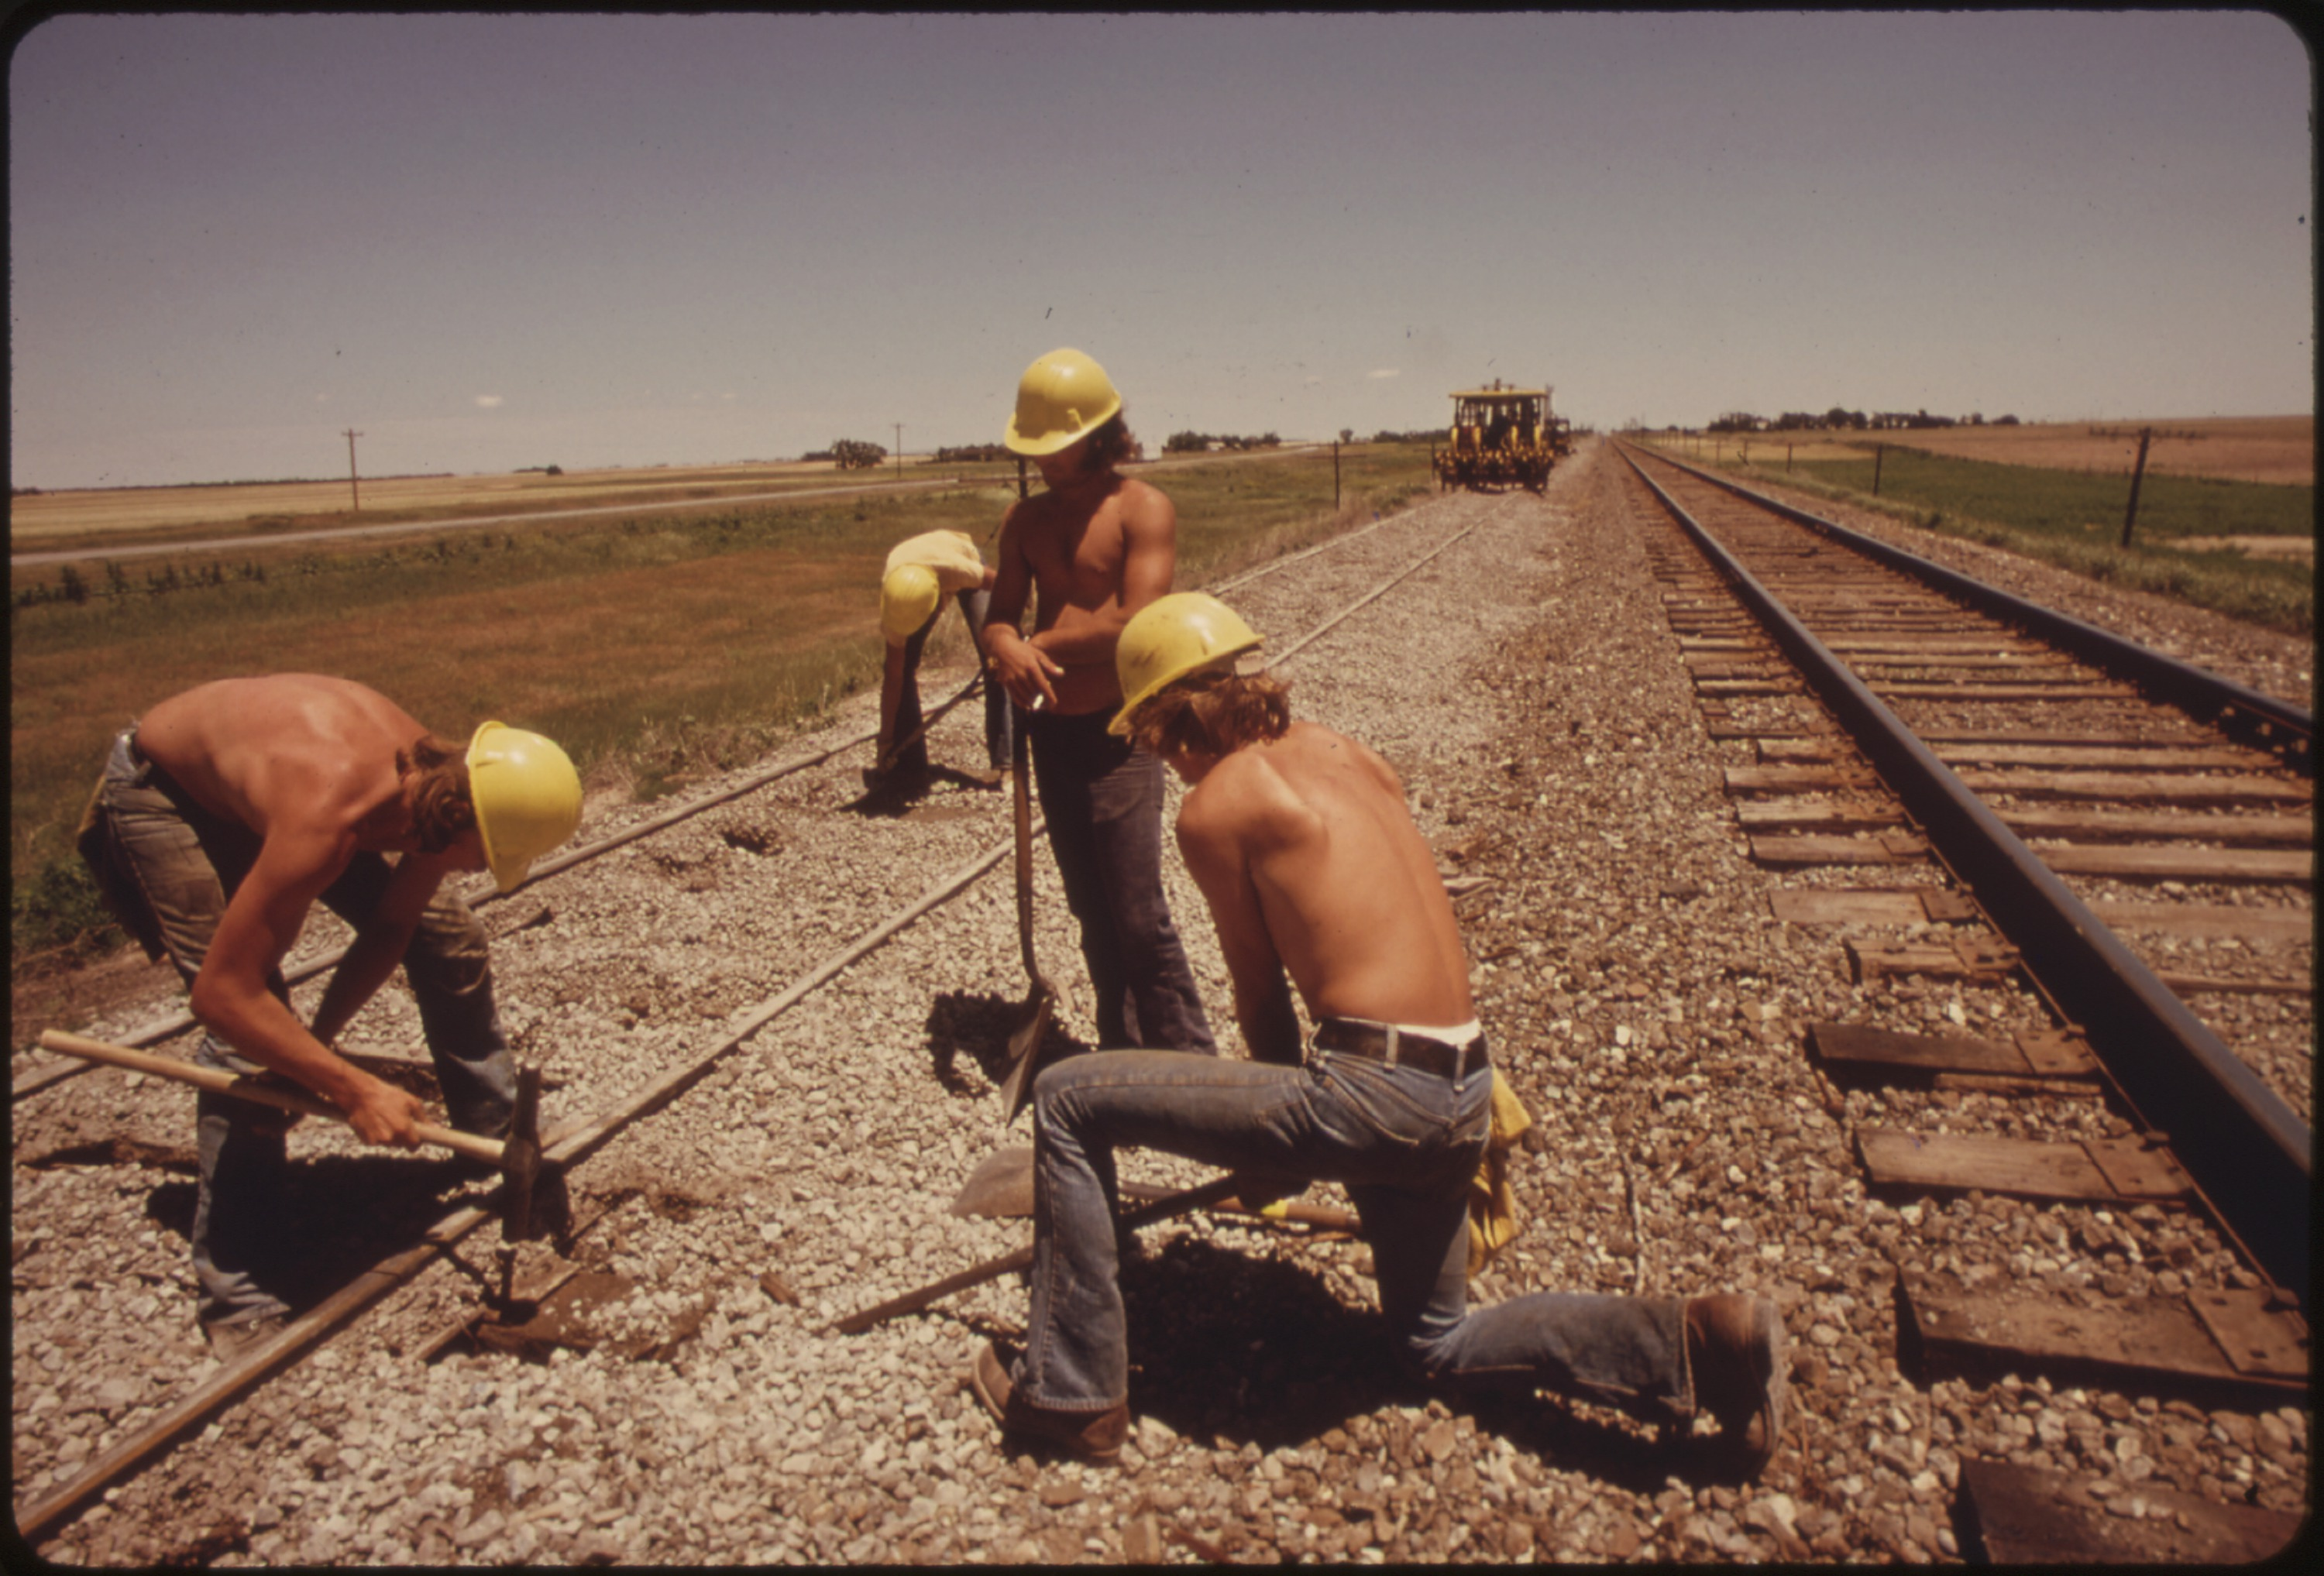 File:RAILROAD WORK CREW IMPROVES THE TRACKS AND BED OF THE